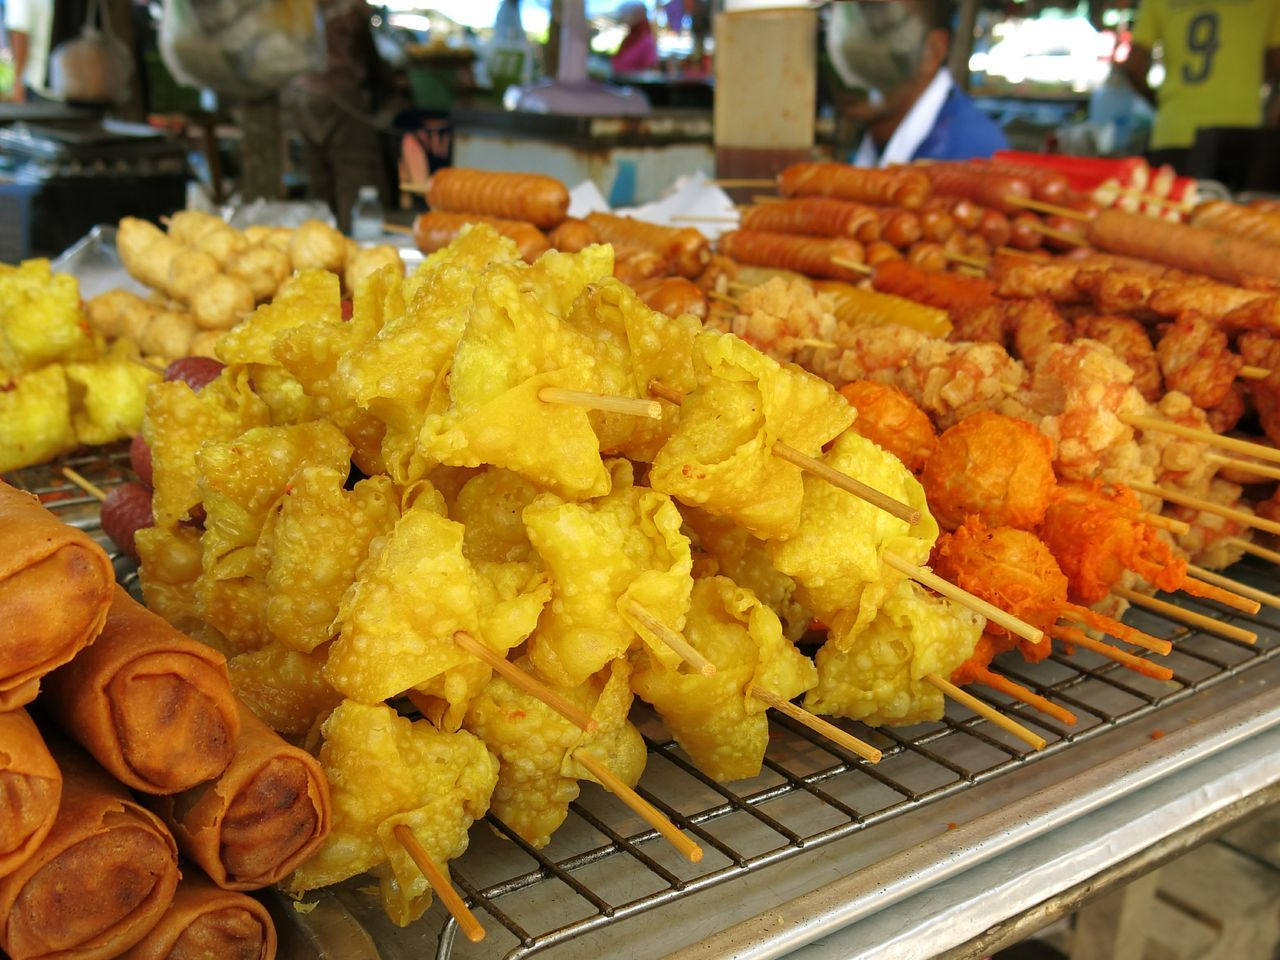 Thai streetfood on a farmer market. Barbecue Close-up Day Farmer Market Focus On Foreground Food Food And Drink Freshness Indulgence Market No People Outdoors Ready-to-eat Retail  Streetfood Take Away Food Thai Food Thai Street Food Typical Unhealthy Eating